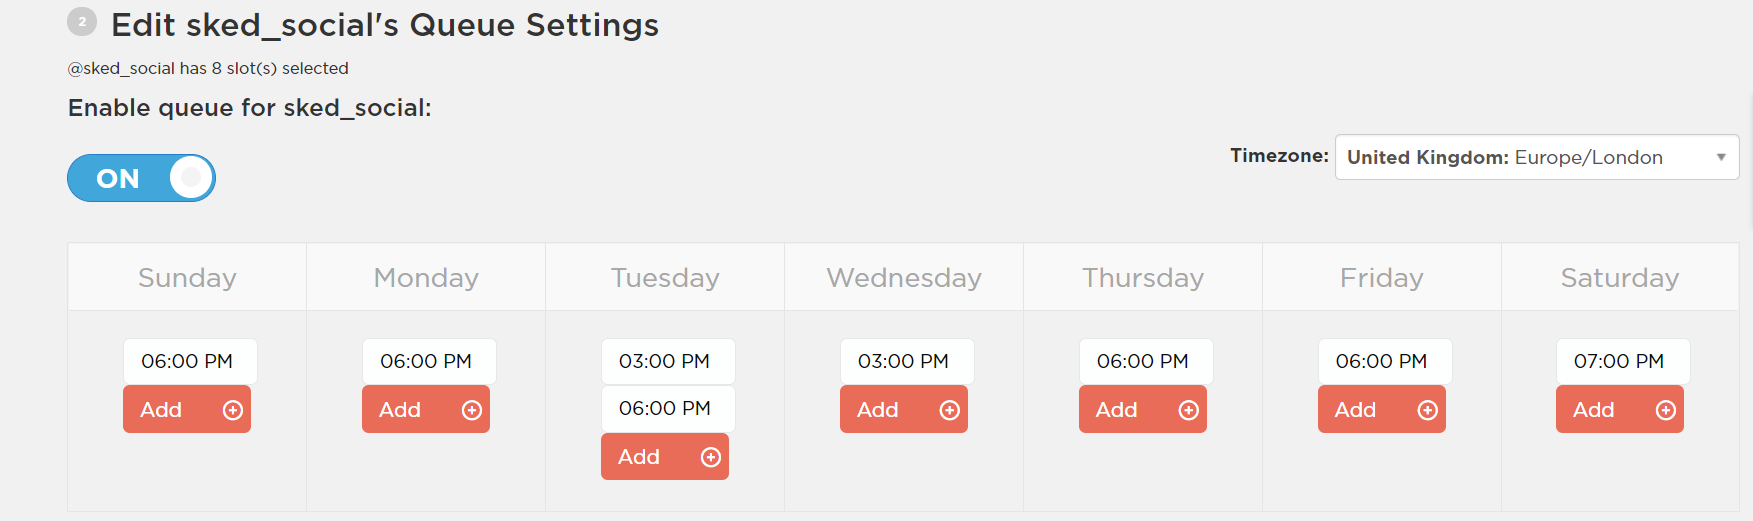 Instagram Scheduling Tools - Compared